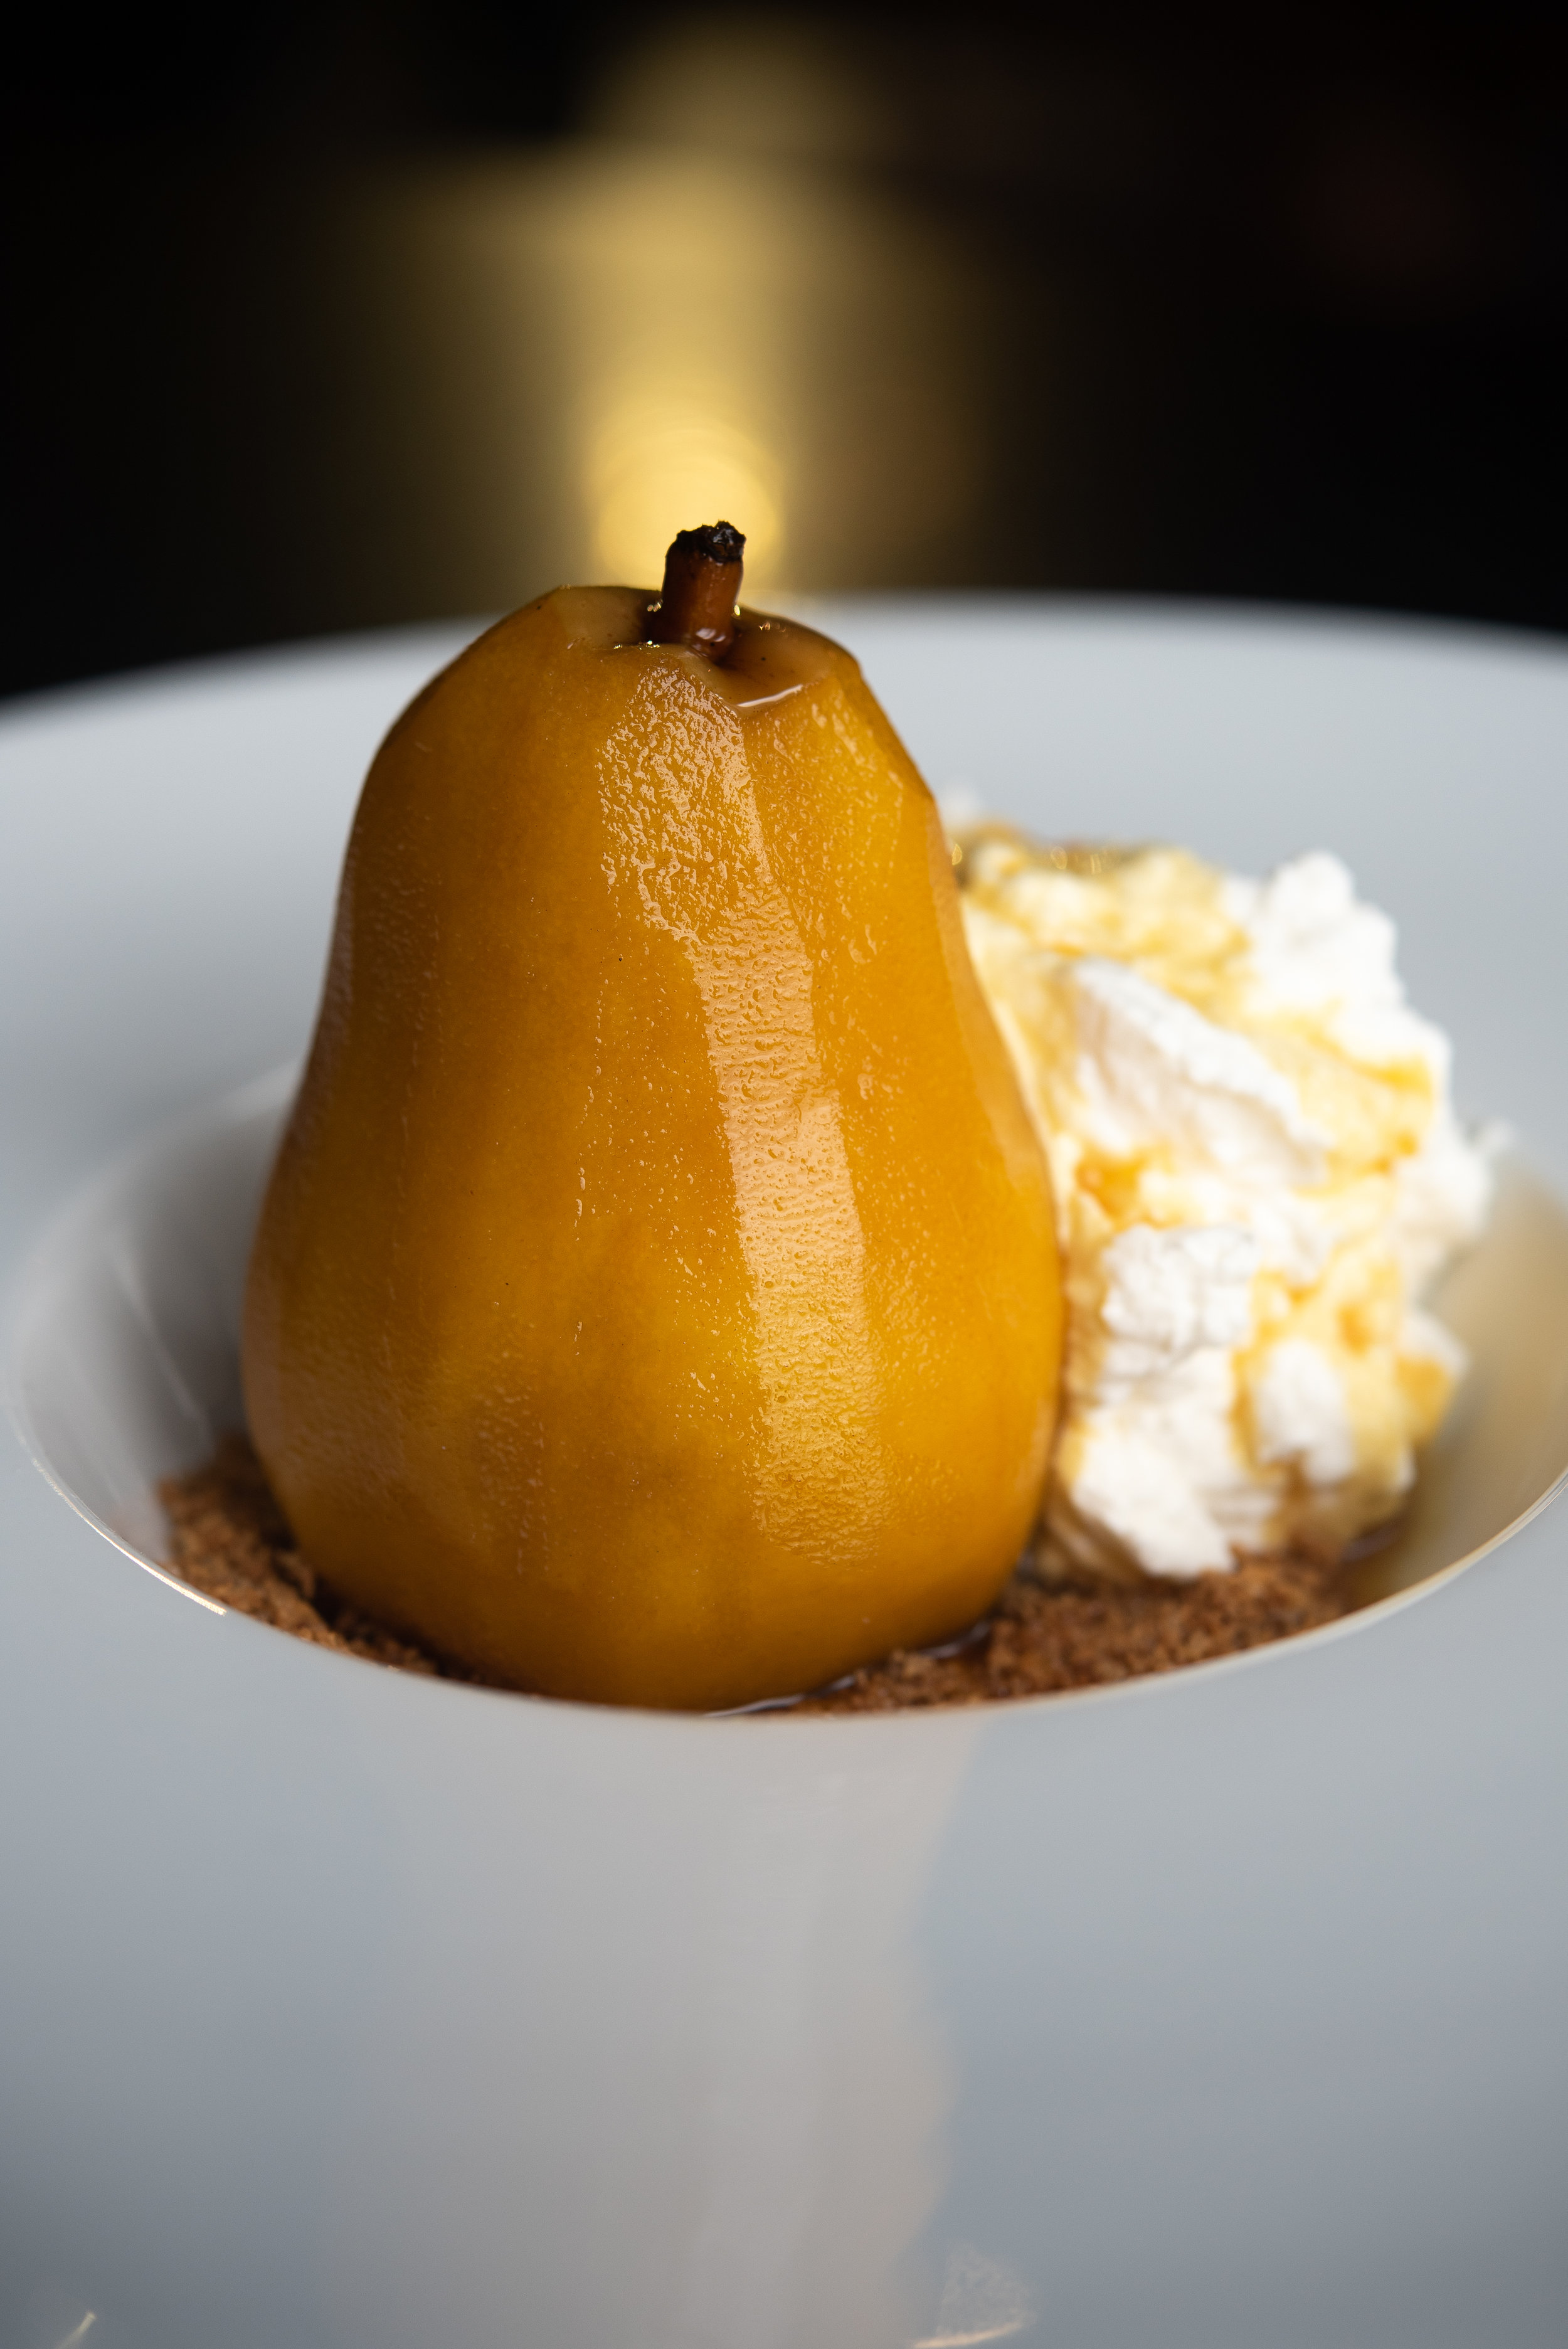 Poached Pear – Saffron Glaze, Brown Butter Crumble, Whipped Cream_9.20.18__Chip Klose2.jpg